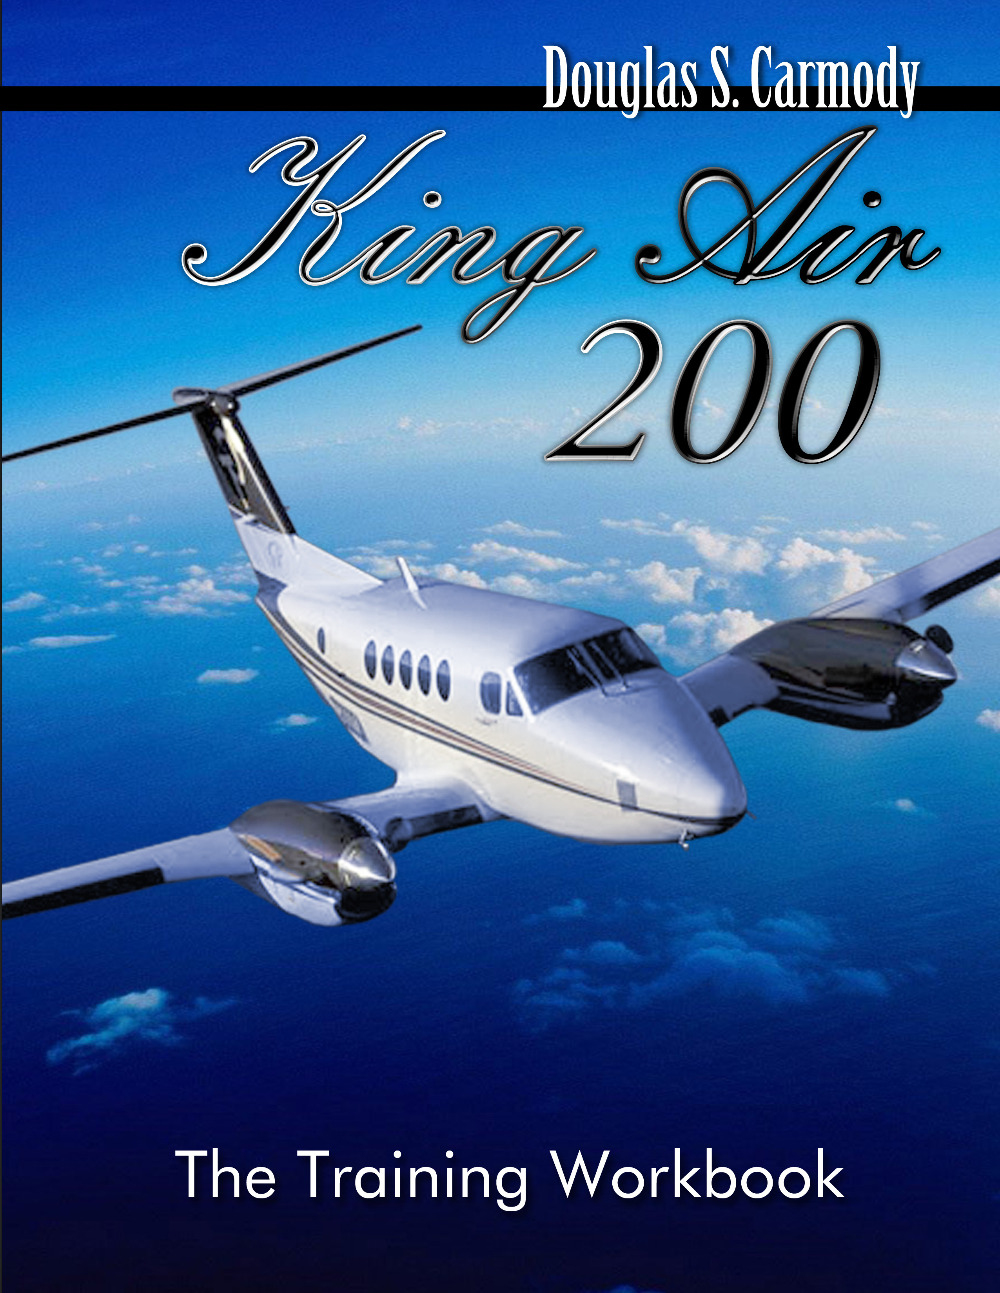 King Air 200 - The Training Workbook